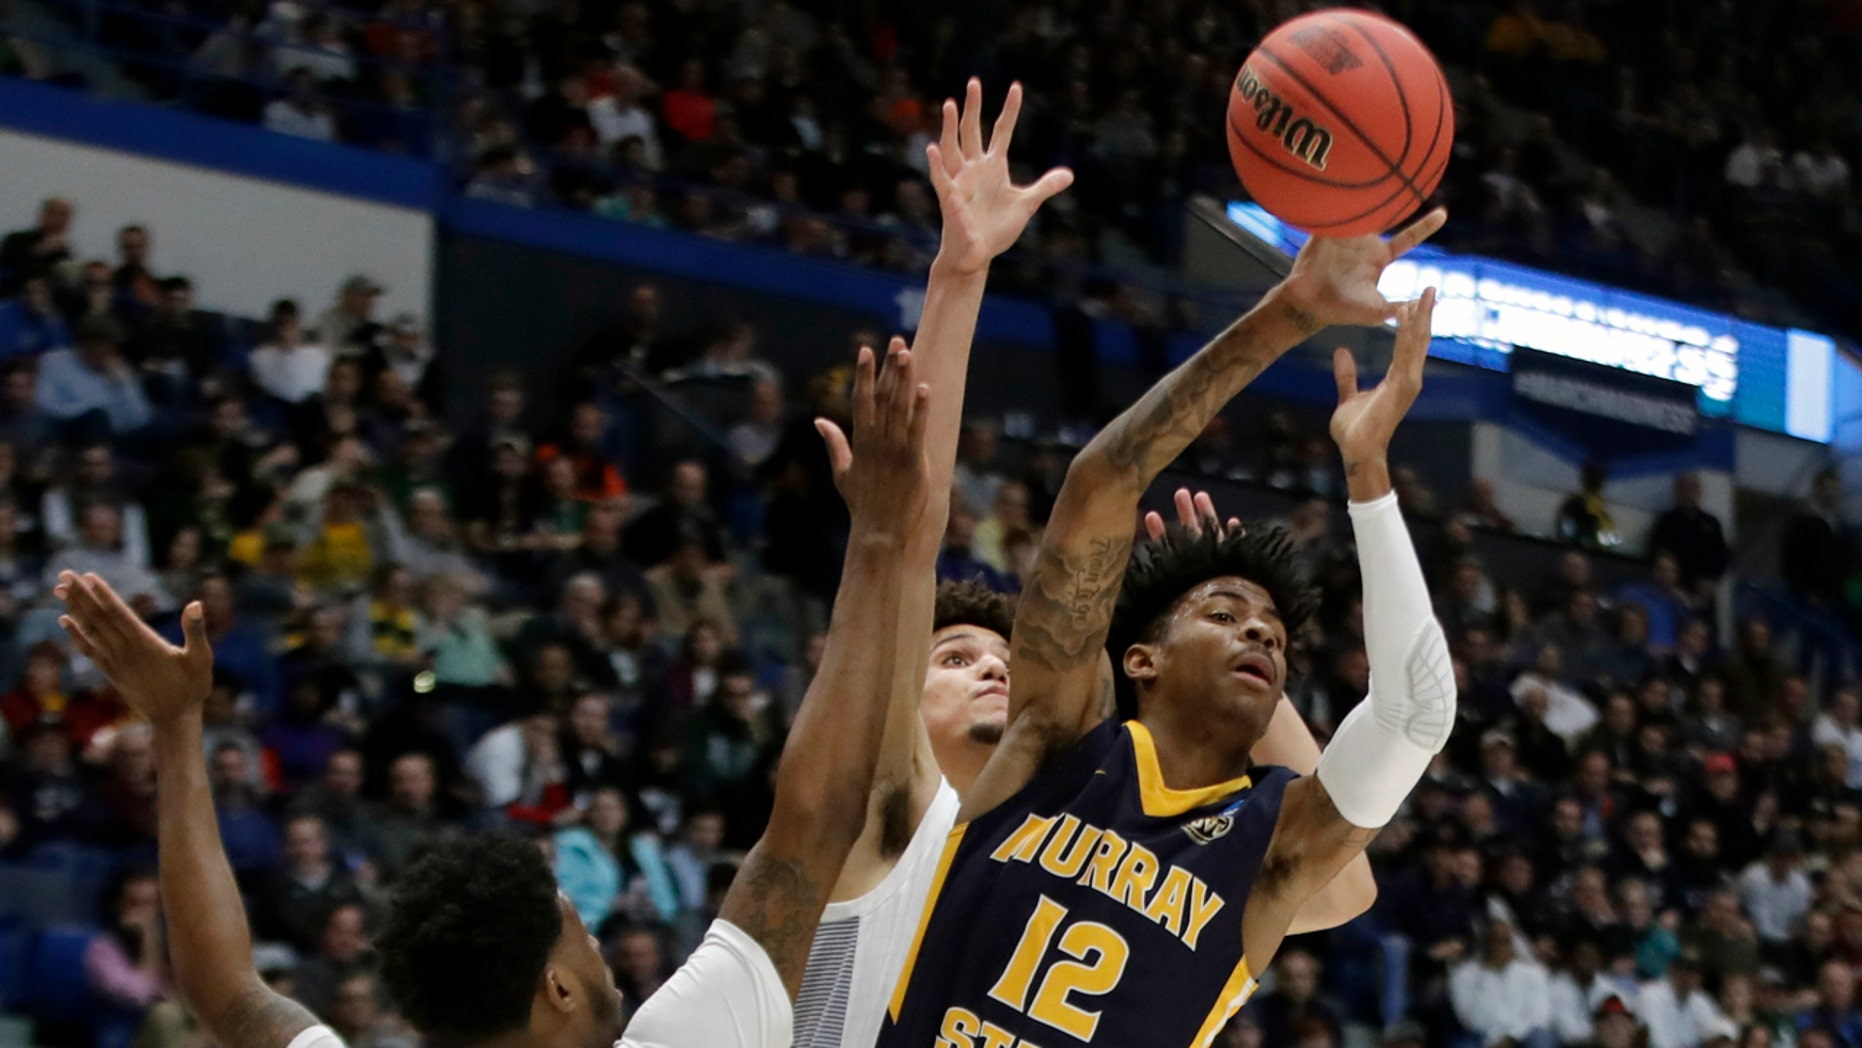 Murray State's Yes Morant (12) passes the ball under pressure from Marquette's Sacar Anim and Brendan Bailey, behind the first half of Thursday's game. (AP Photo / Elise Amendola)